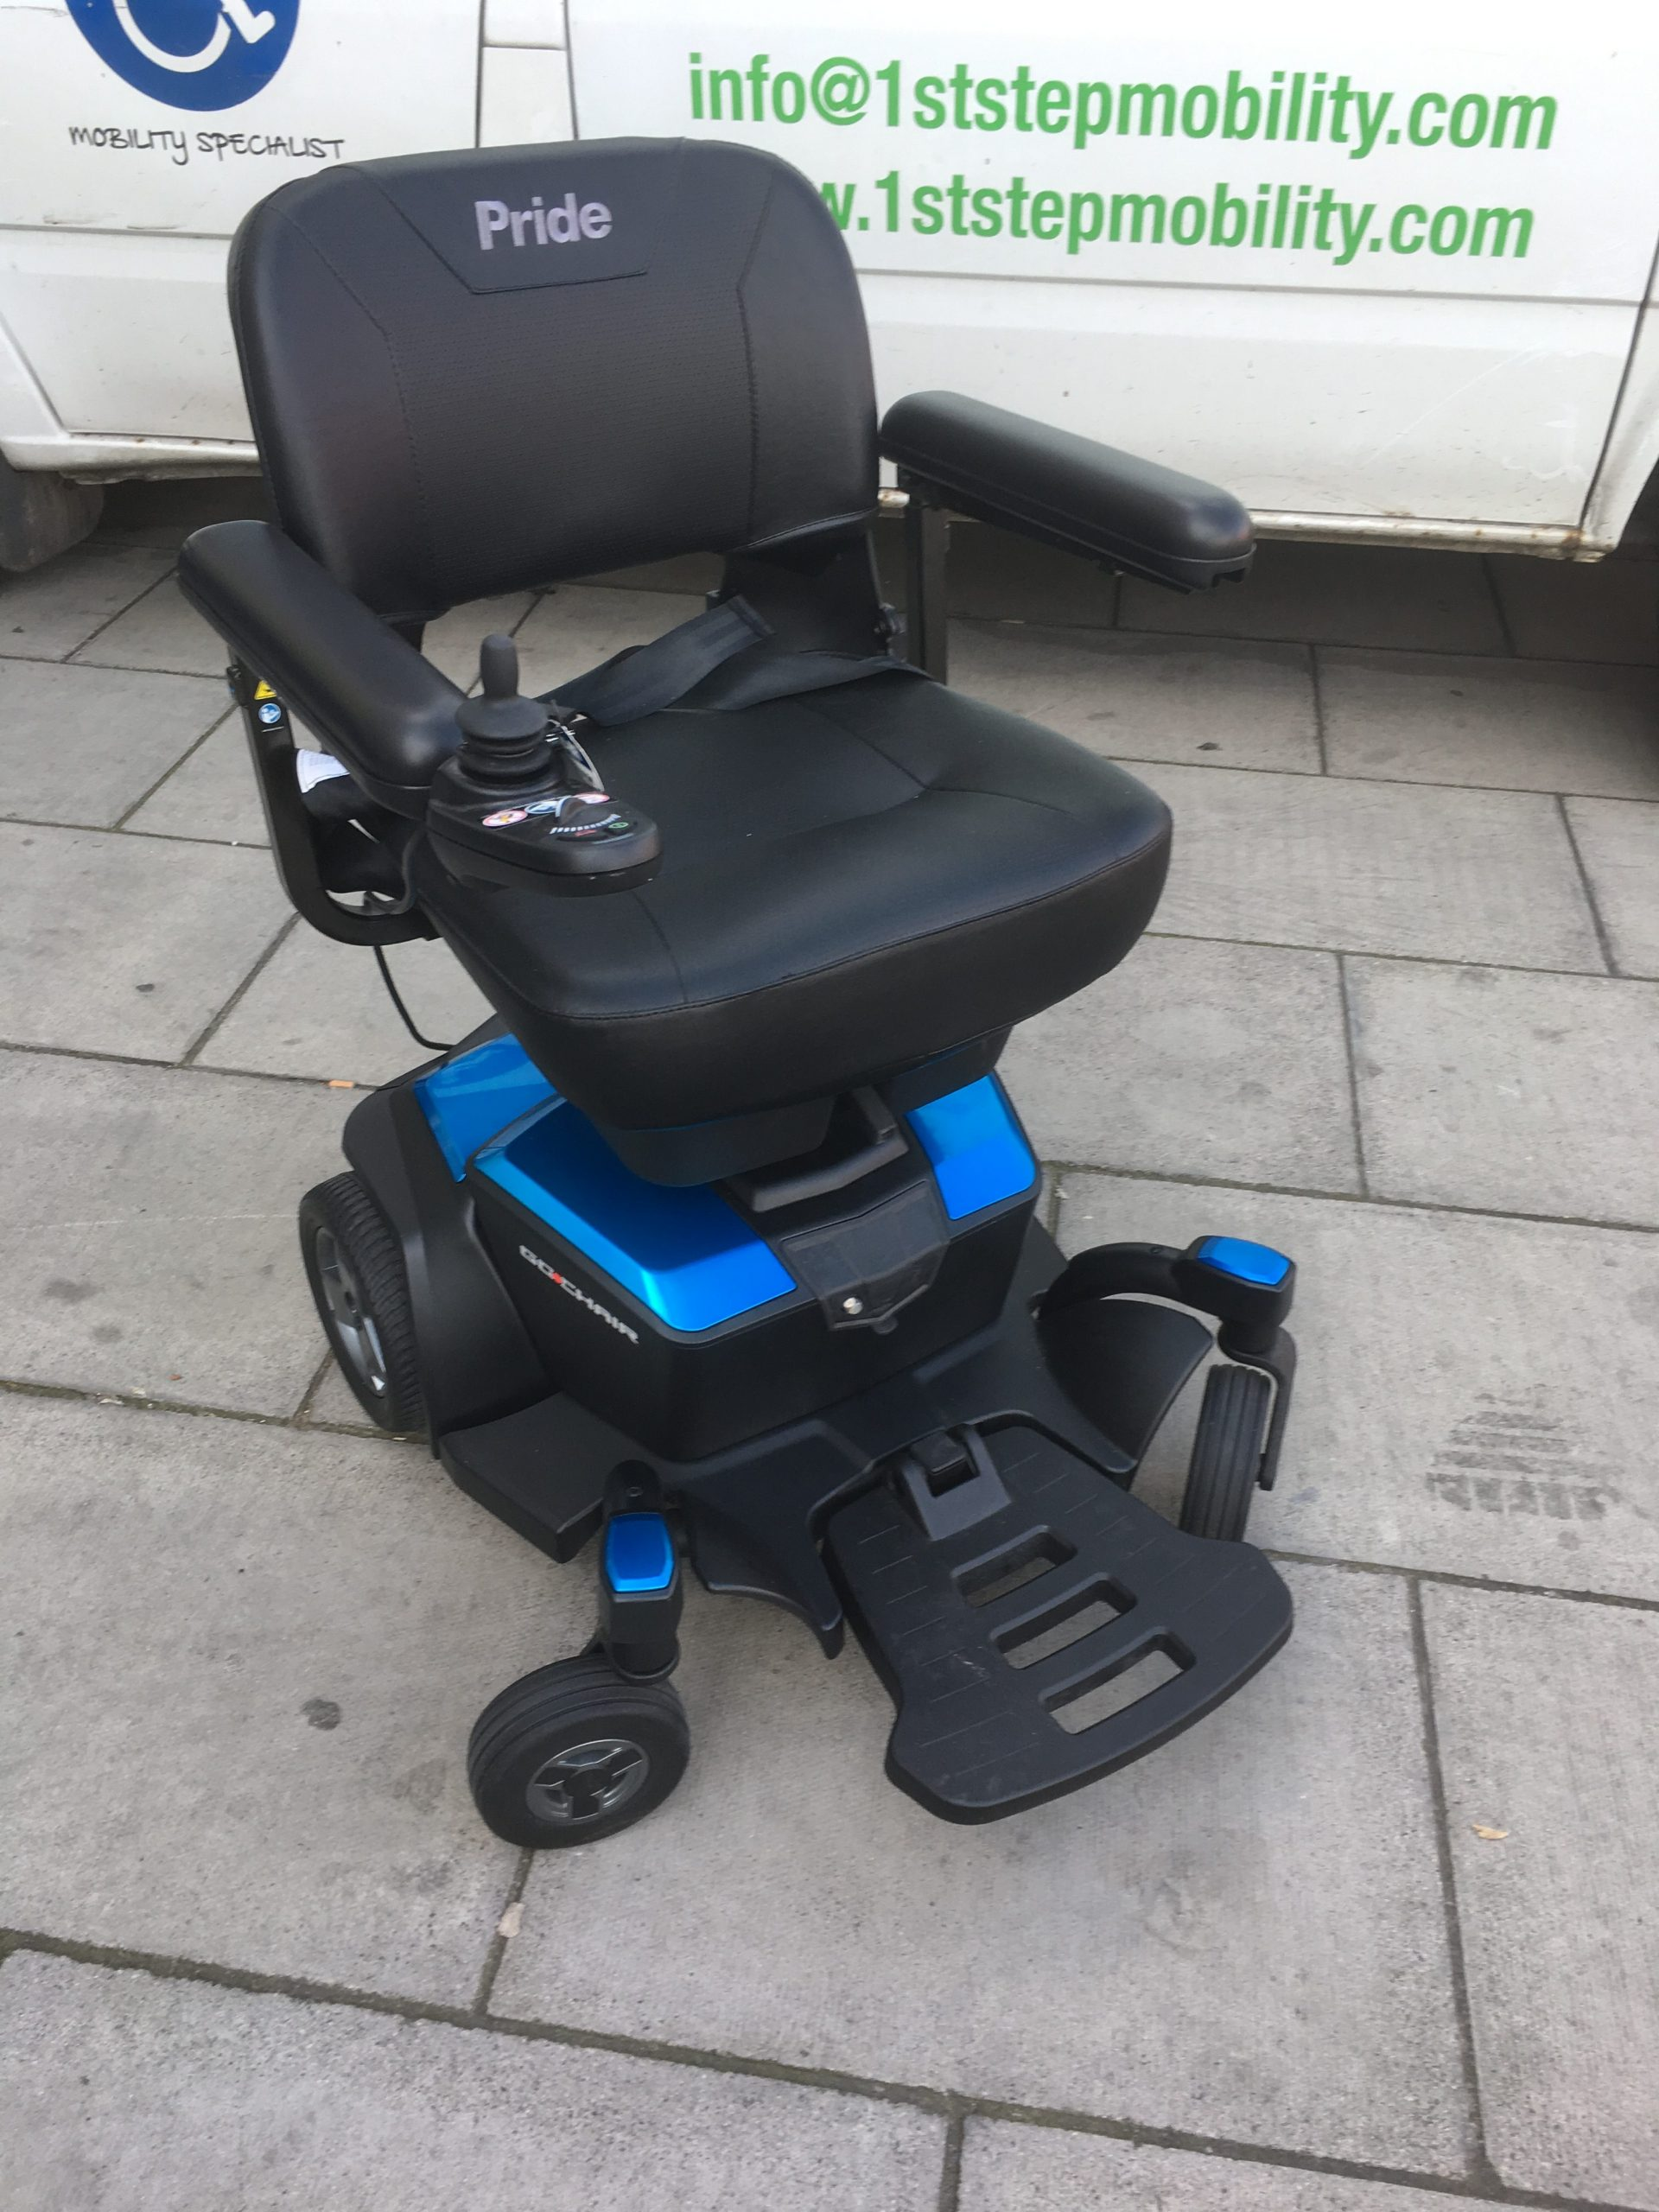 2nd Hand Pride Go Chair Travel Powerchair 1st Step Mobility